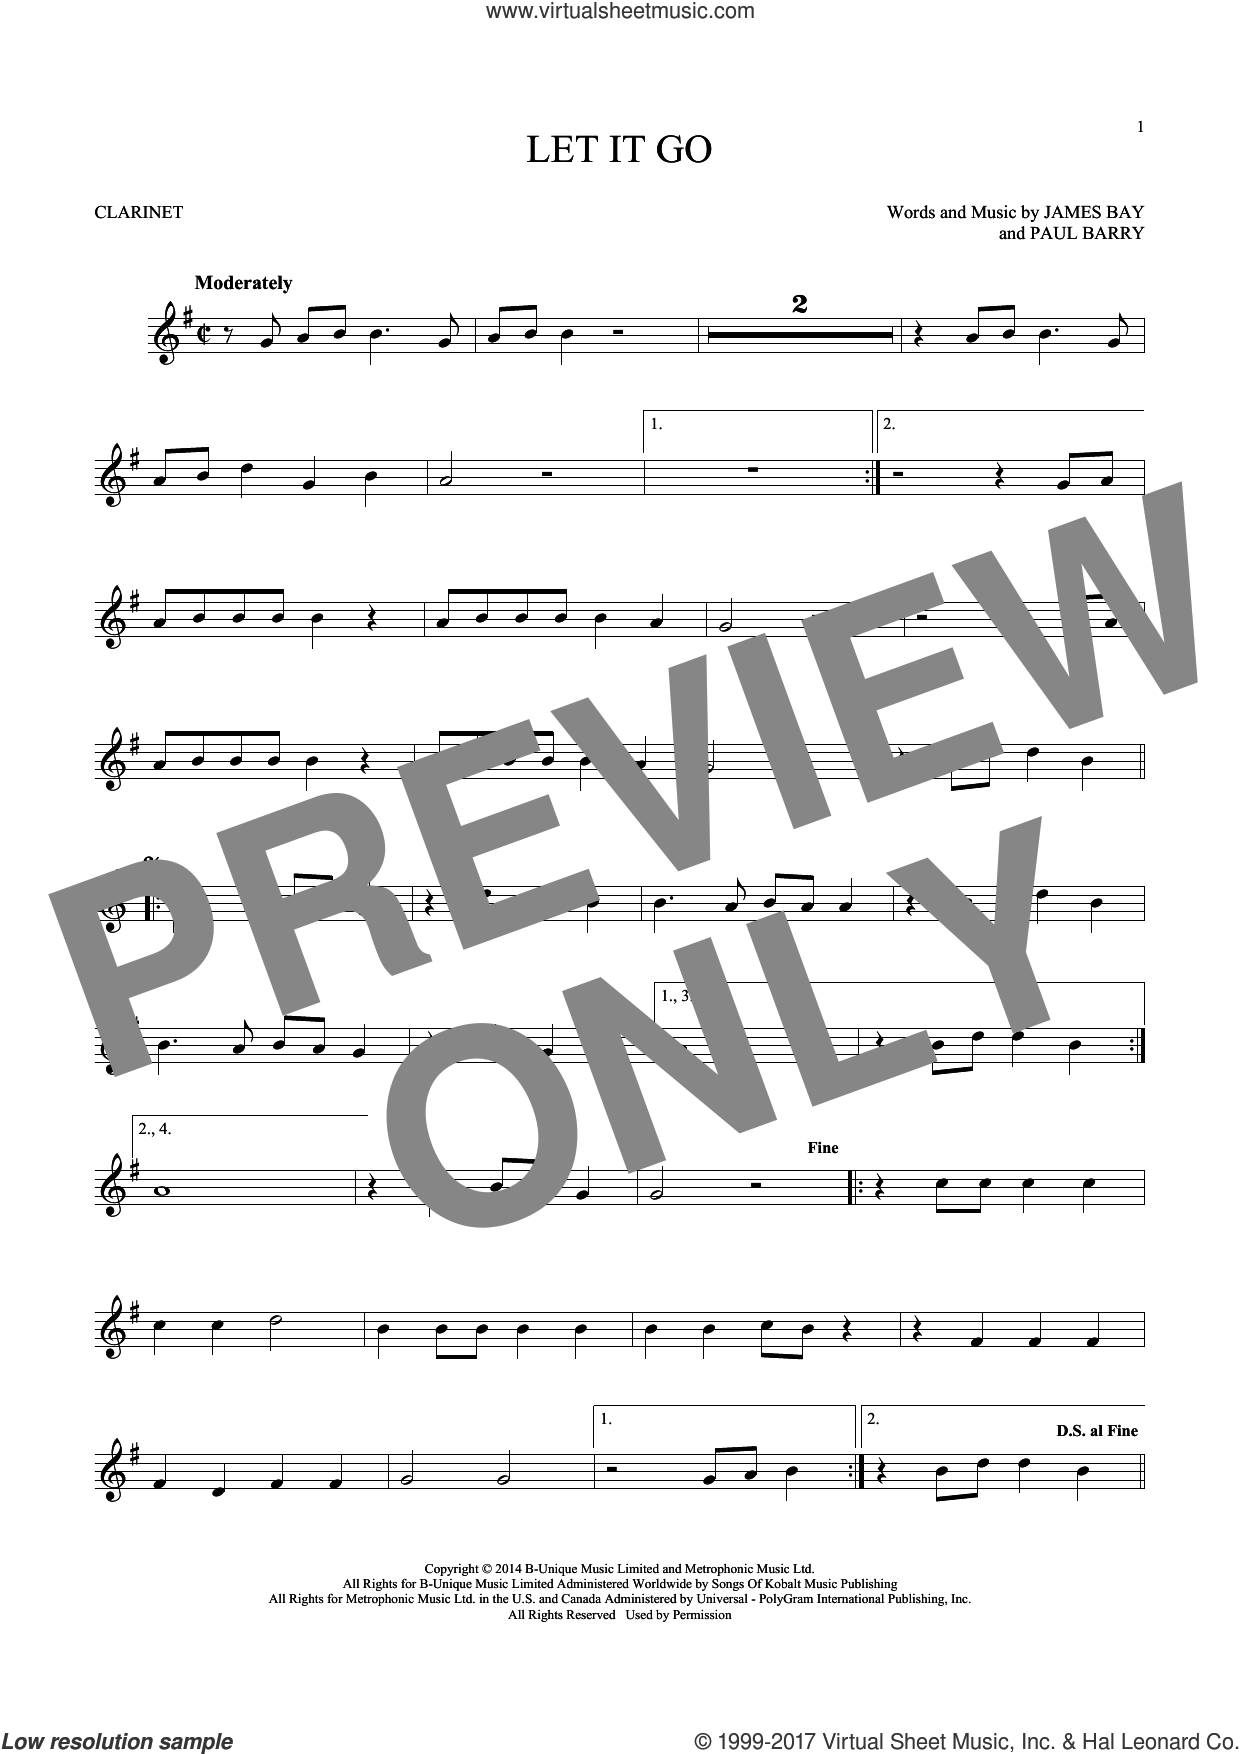 Let It Go sheet music for clarinet solo by James Bay and Paul Barry, intermediate skill level